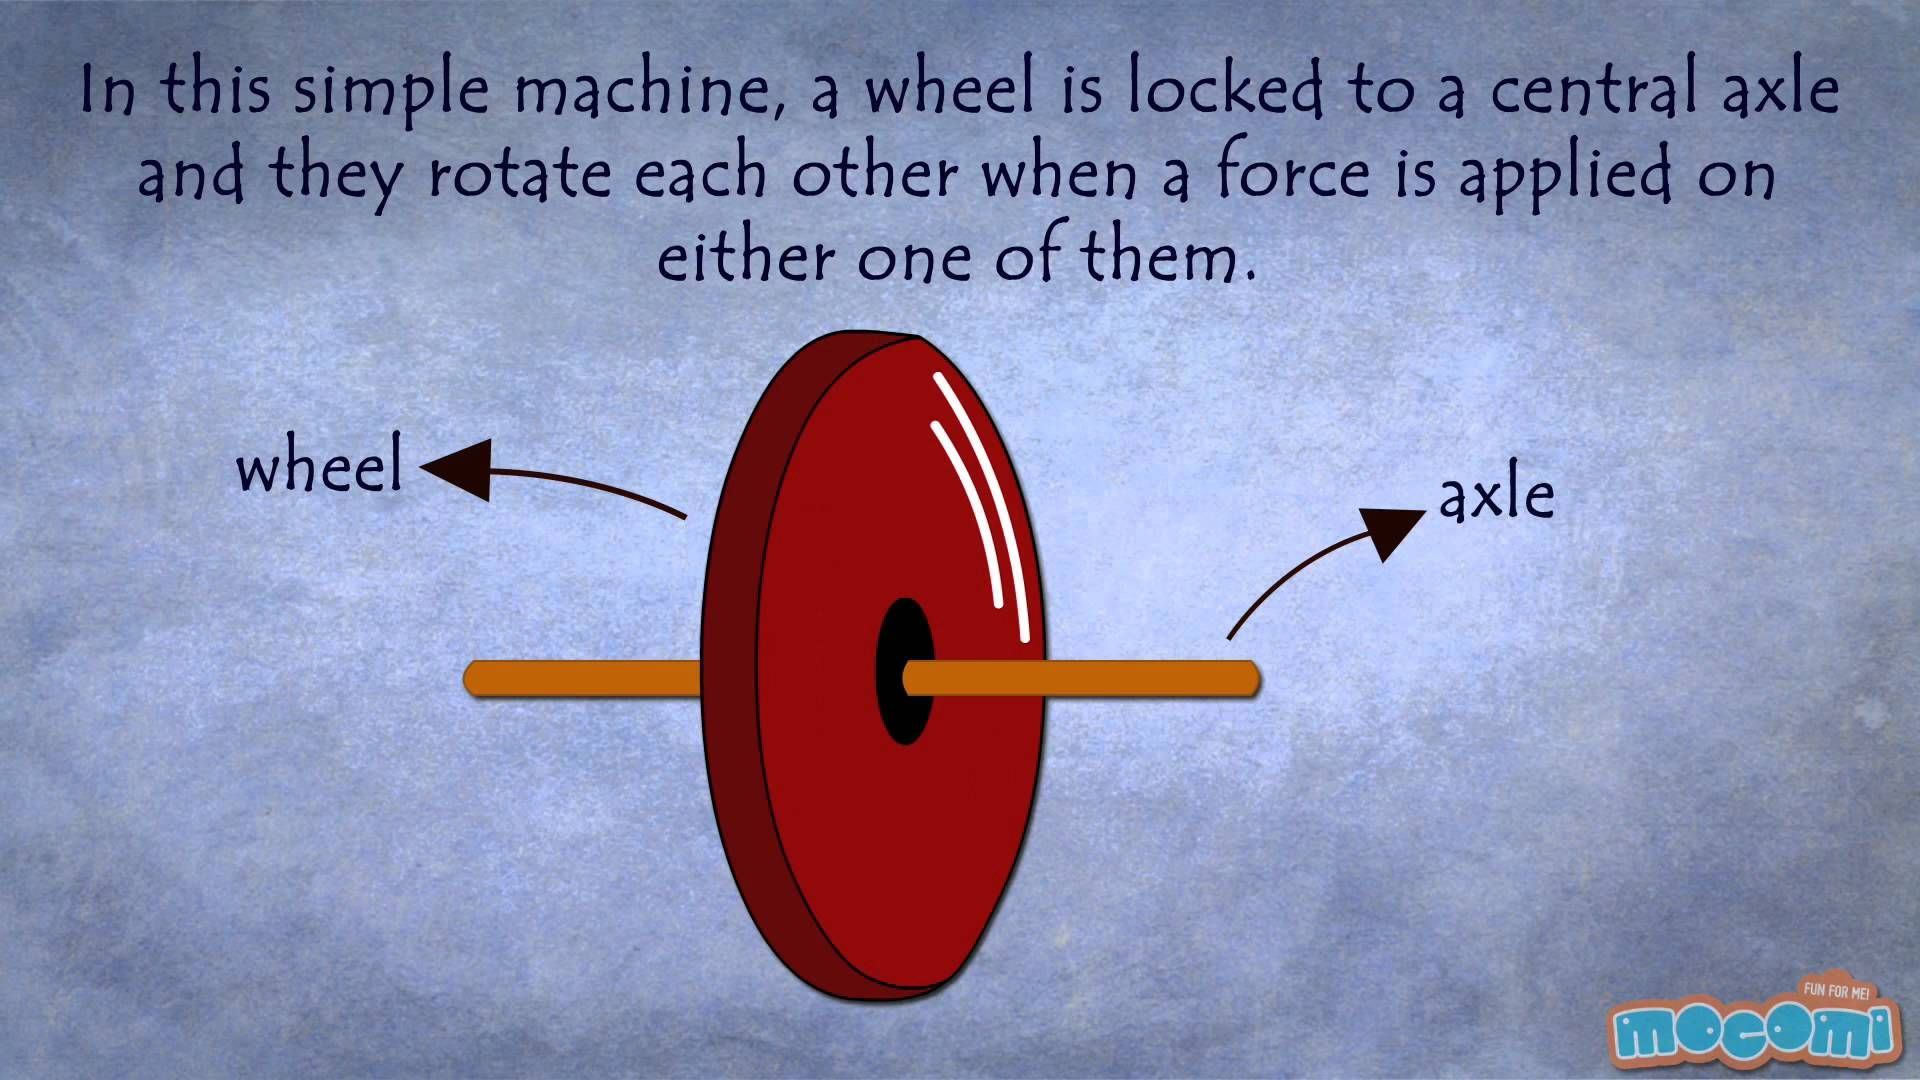 wheel and axle simple machine definition